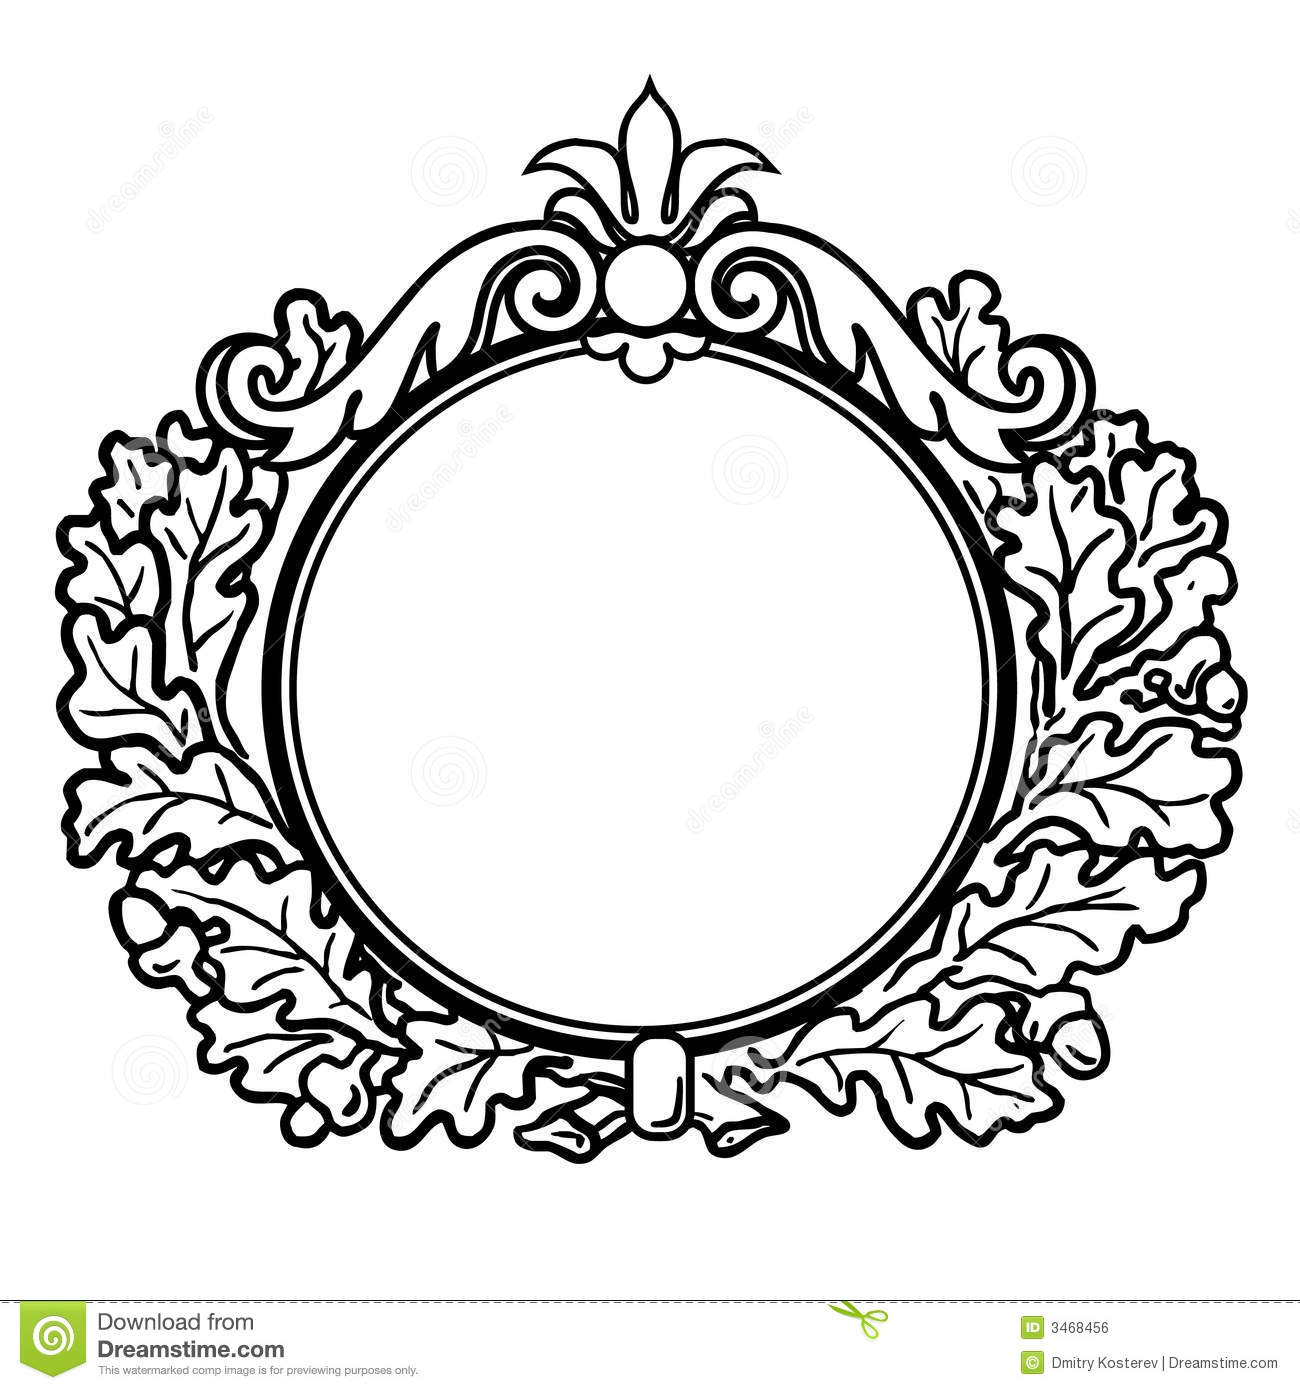 Round picture frame clipart vector royalty free Round Victorian Frame Clipart | Clipart Panda - Free Clipart ... vector royalty free